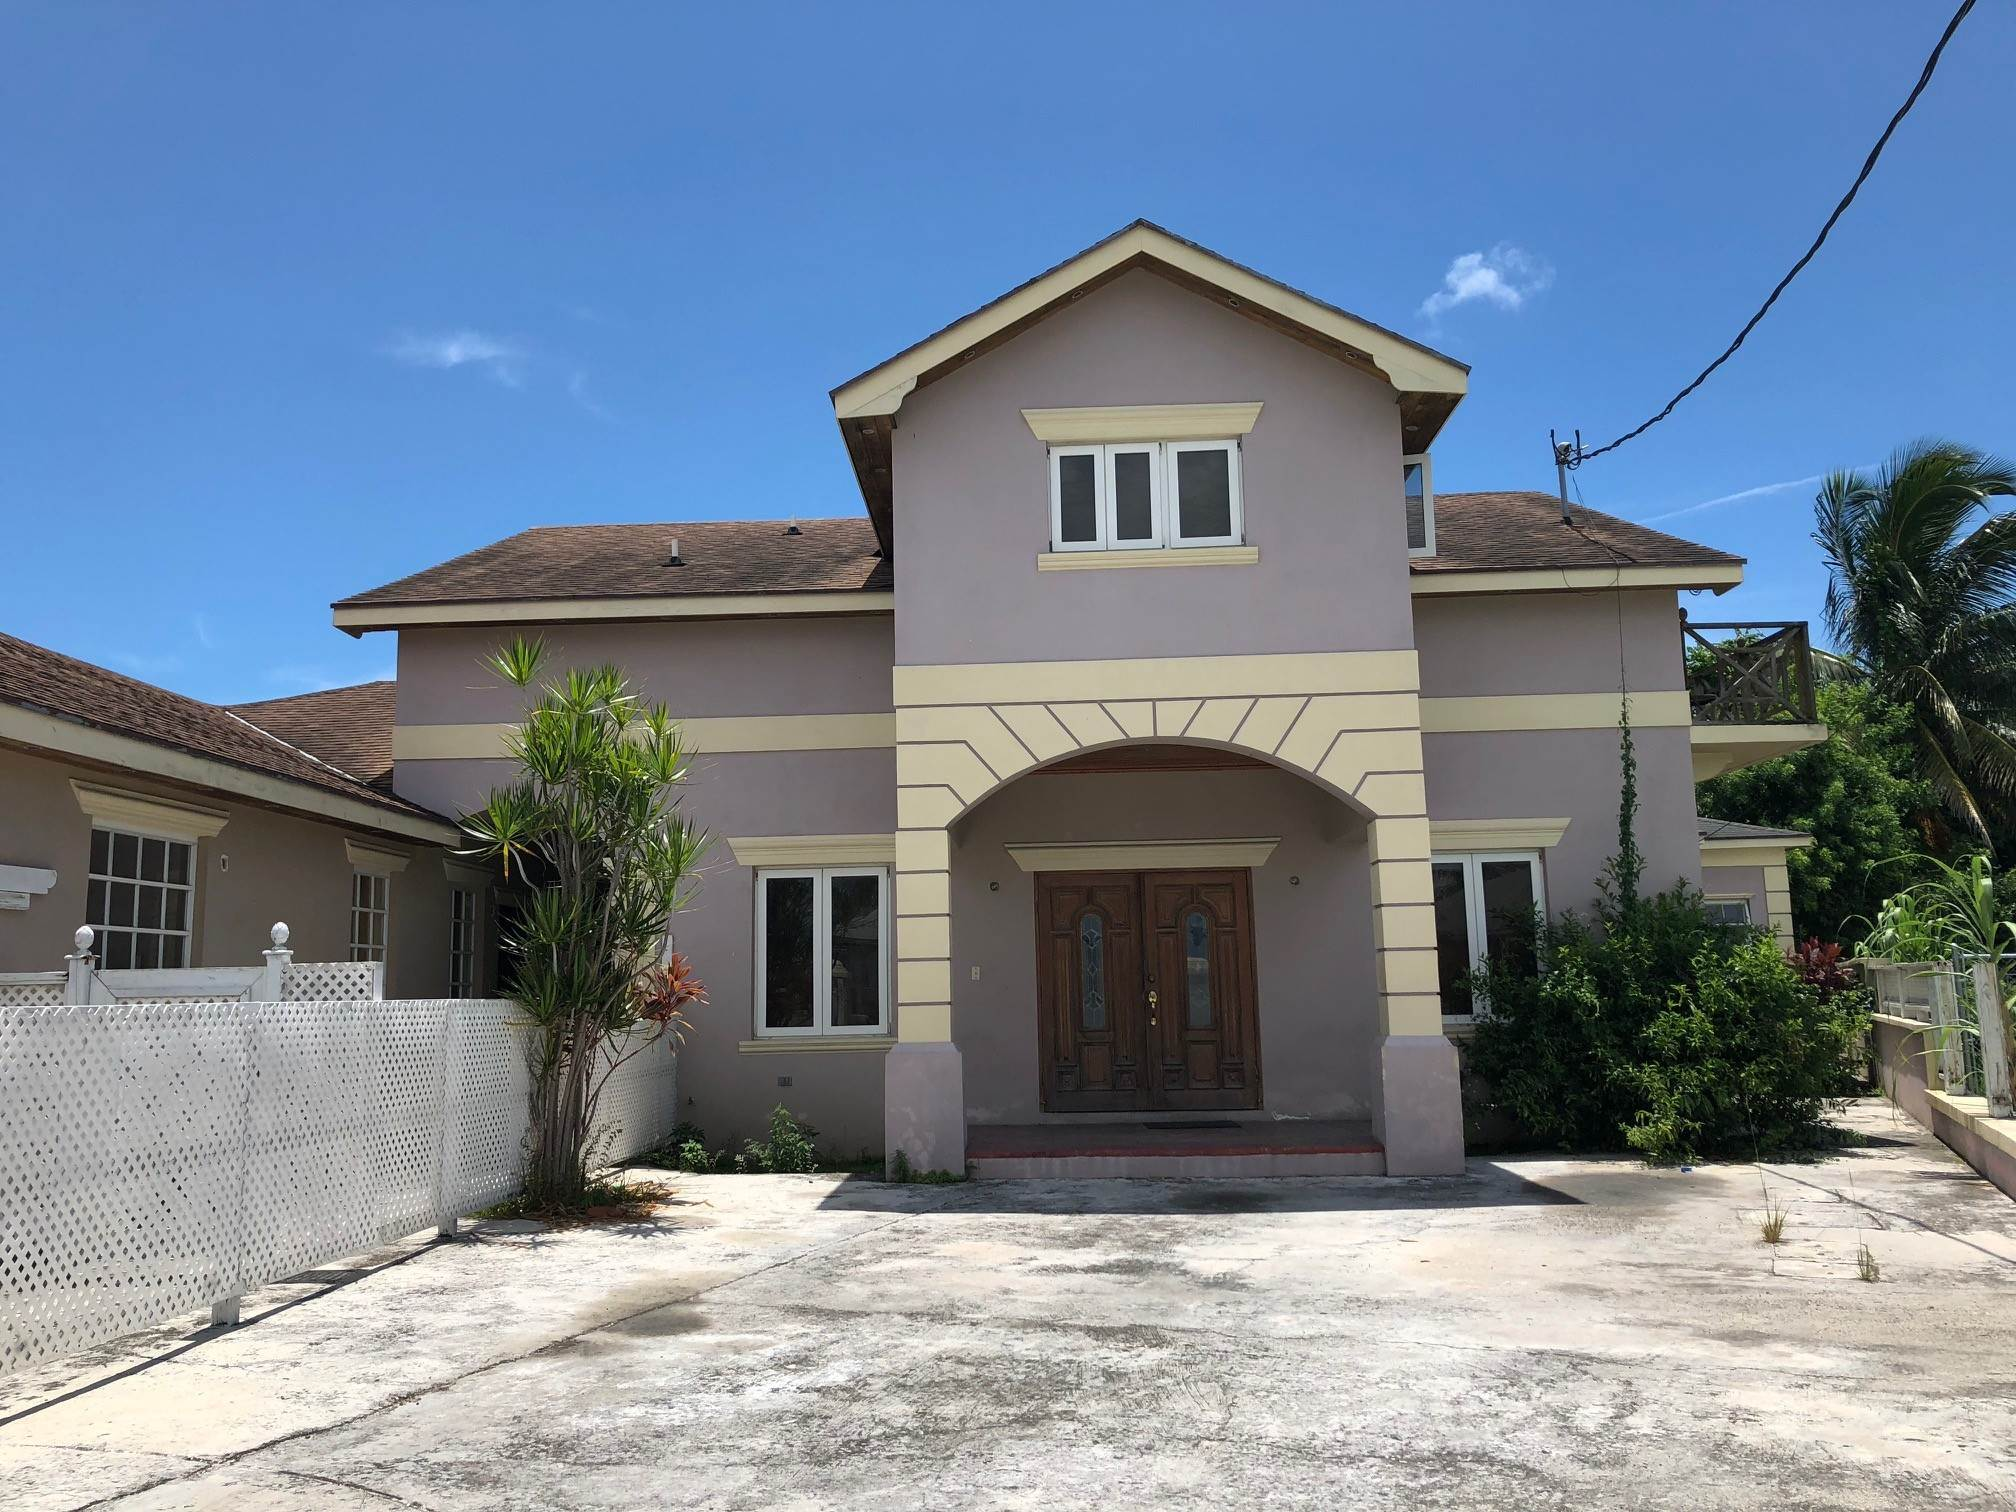 Multi Family for Sale at 4 bed Home with Apartments off Bellot Road - MLS 42150 Fire Trail Road, Nassau And Paradise Island, Bahamas